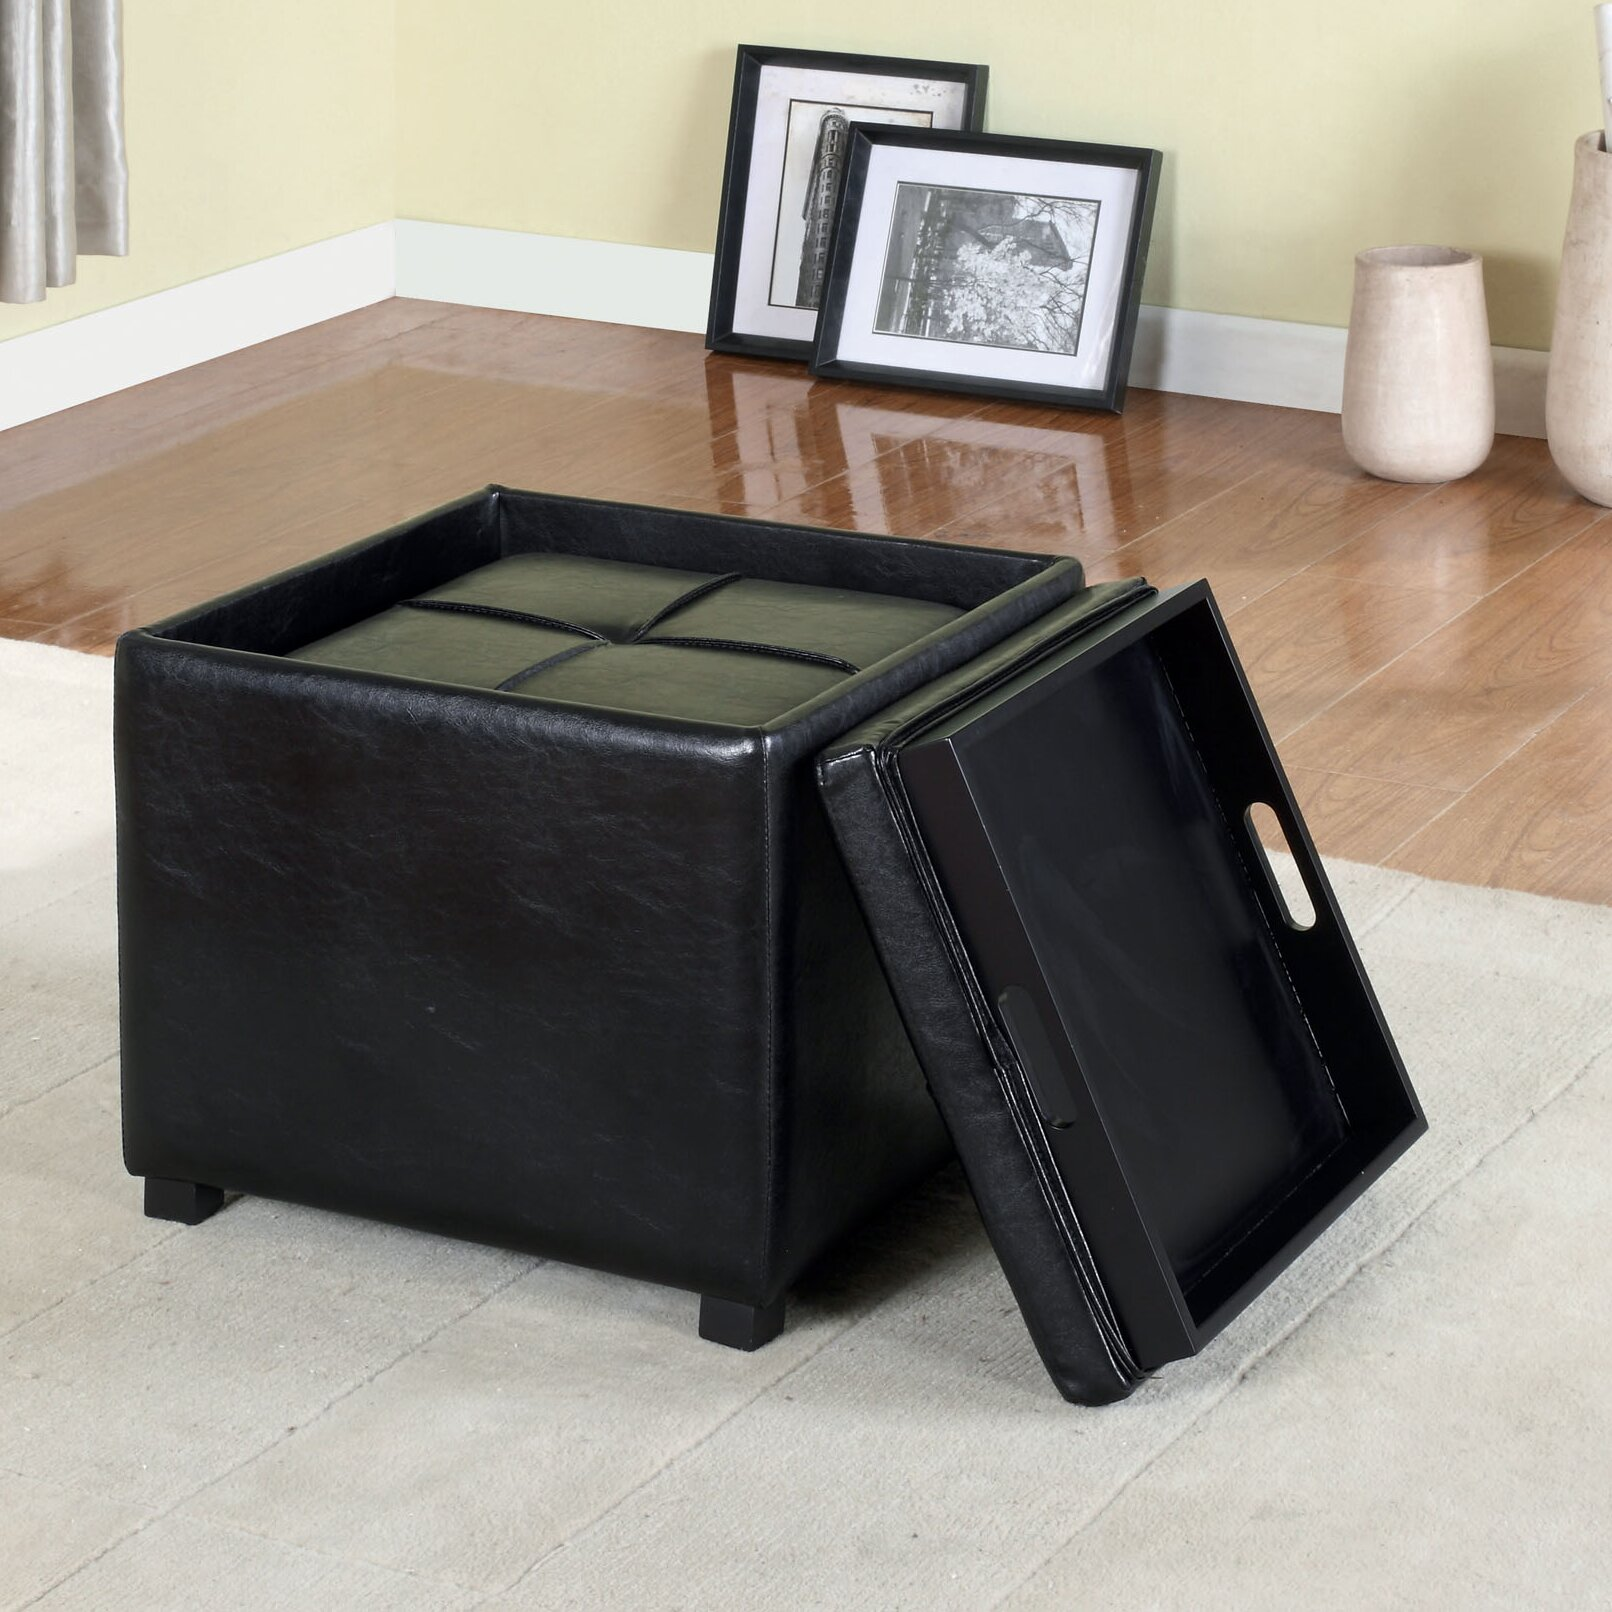 Coffee table with nesting ottomans - Flappers Nesting Ottoman